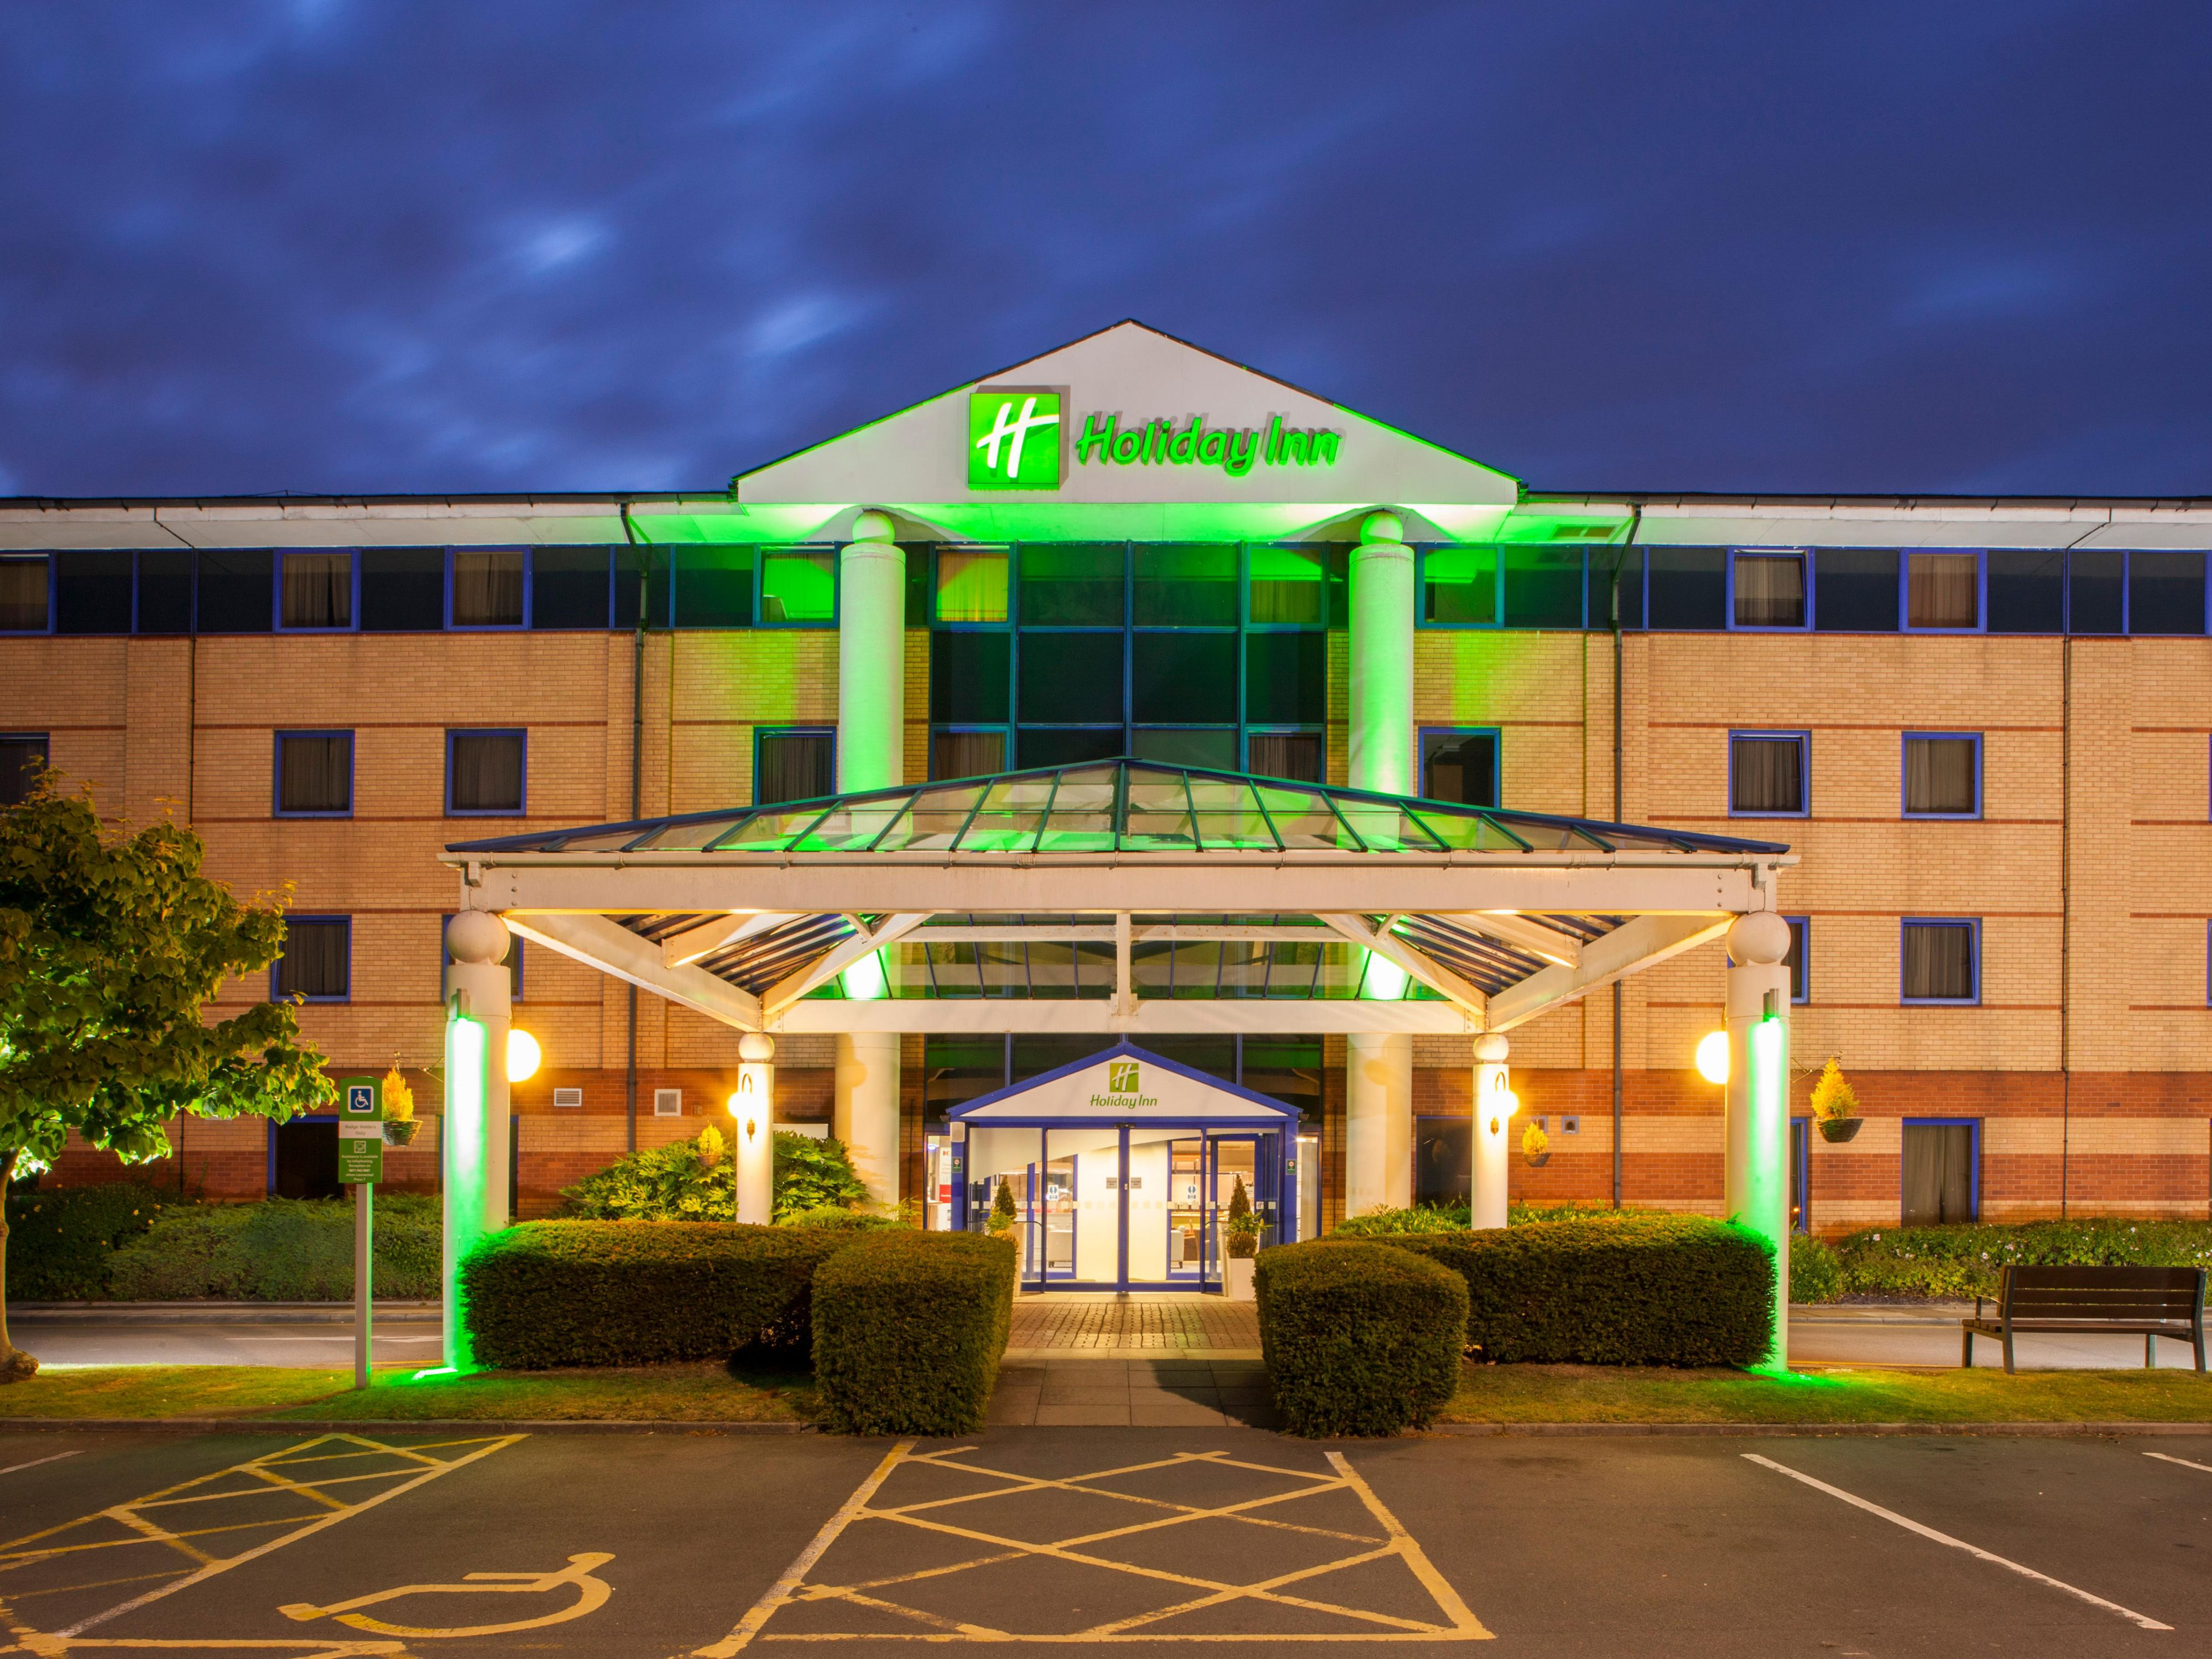 Hotels Near Warrington M6 Holiday Inn Warrington